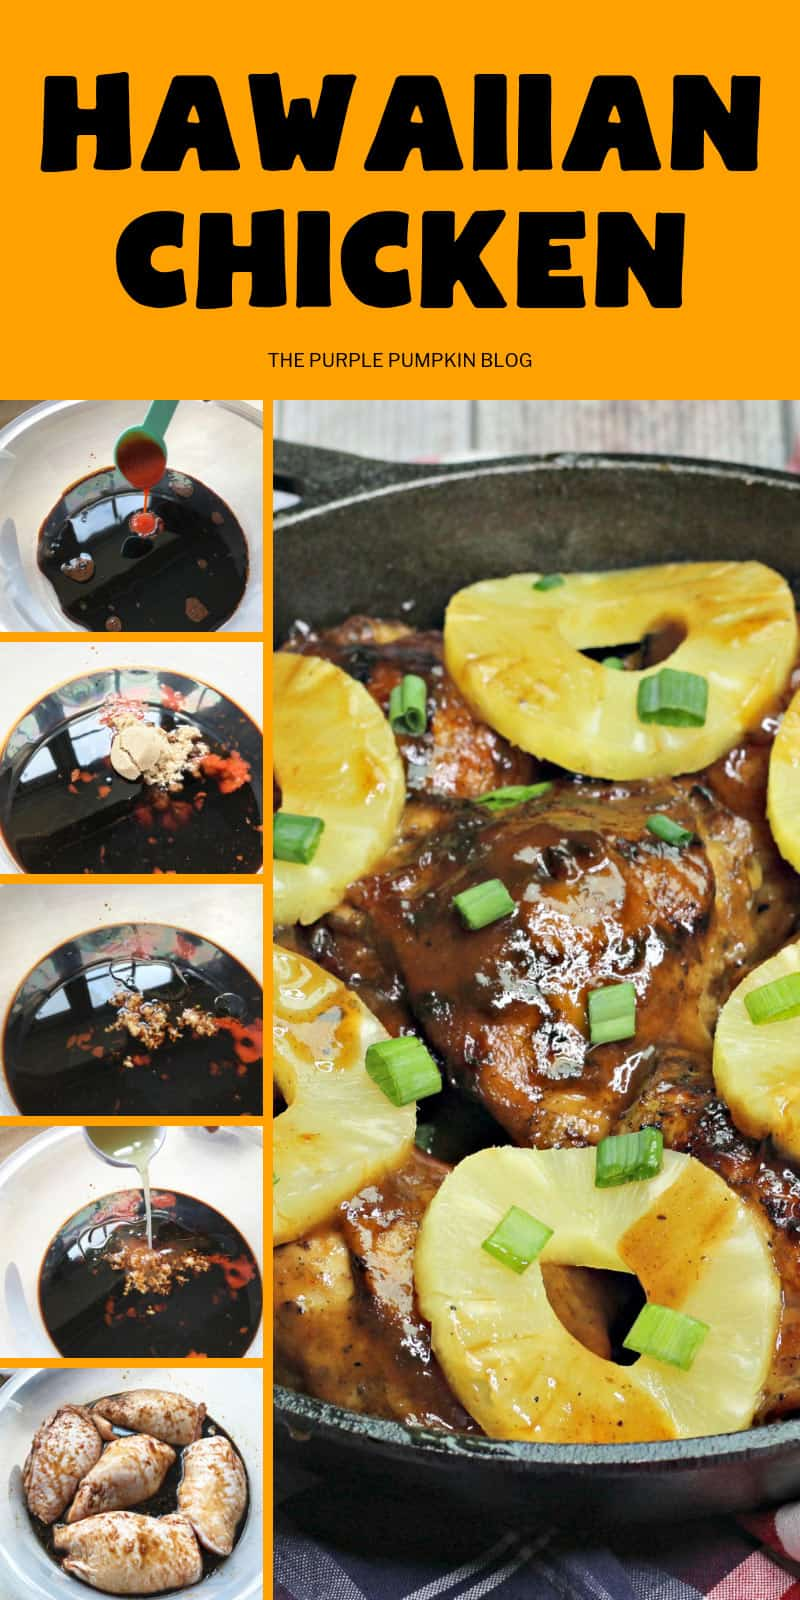 Step by step images of marinating and cooking hawaiian chicken